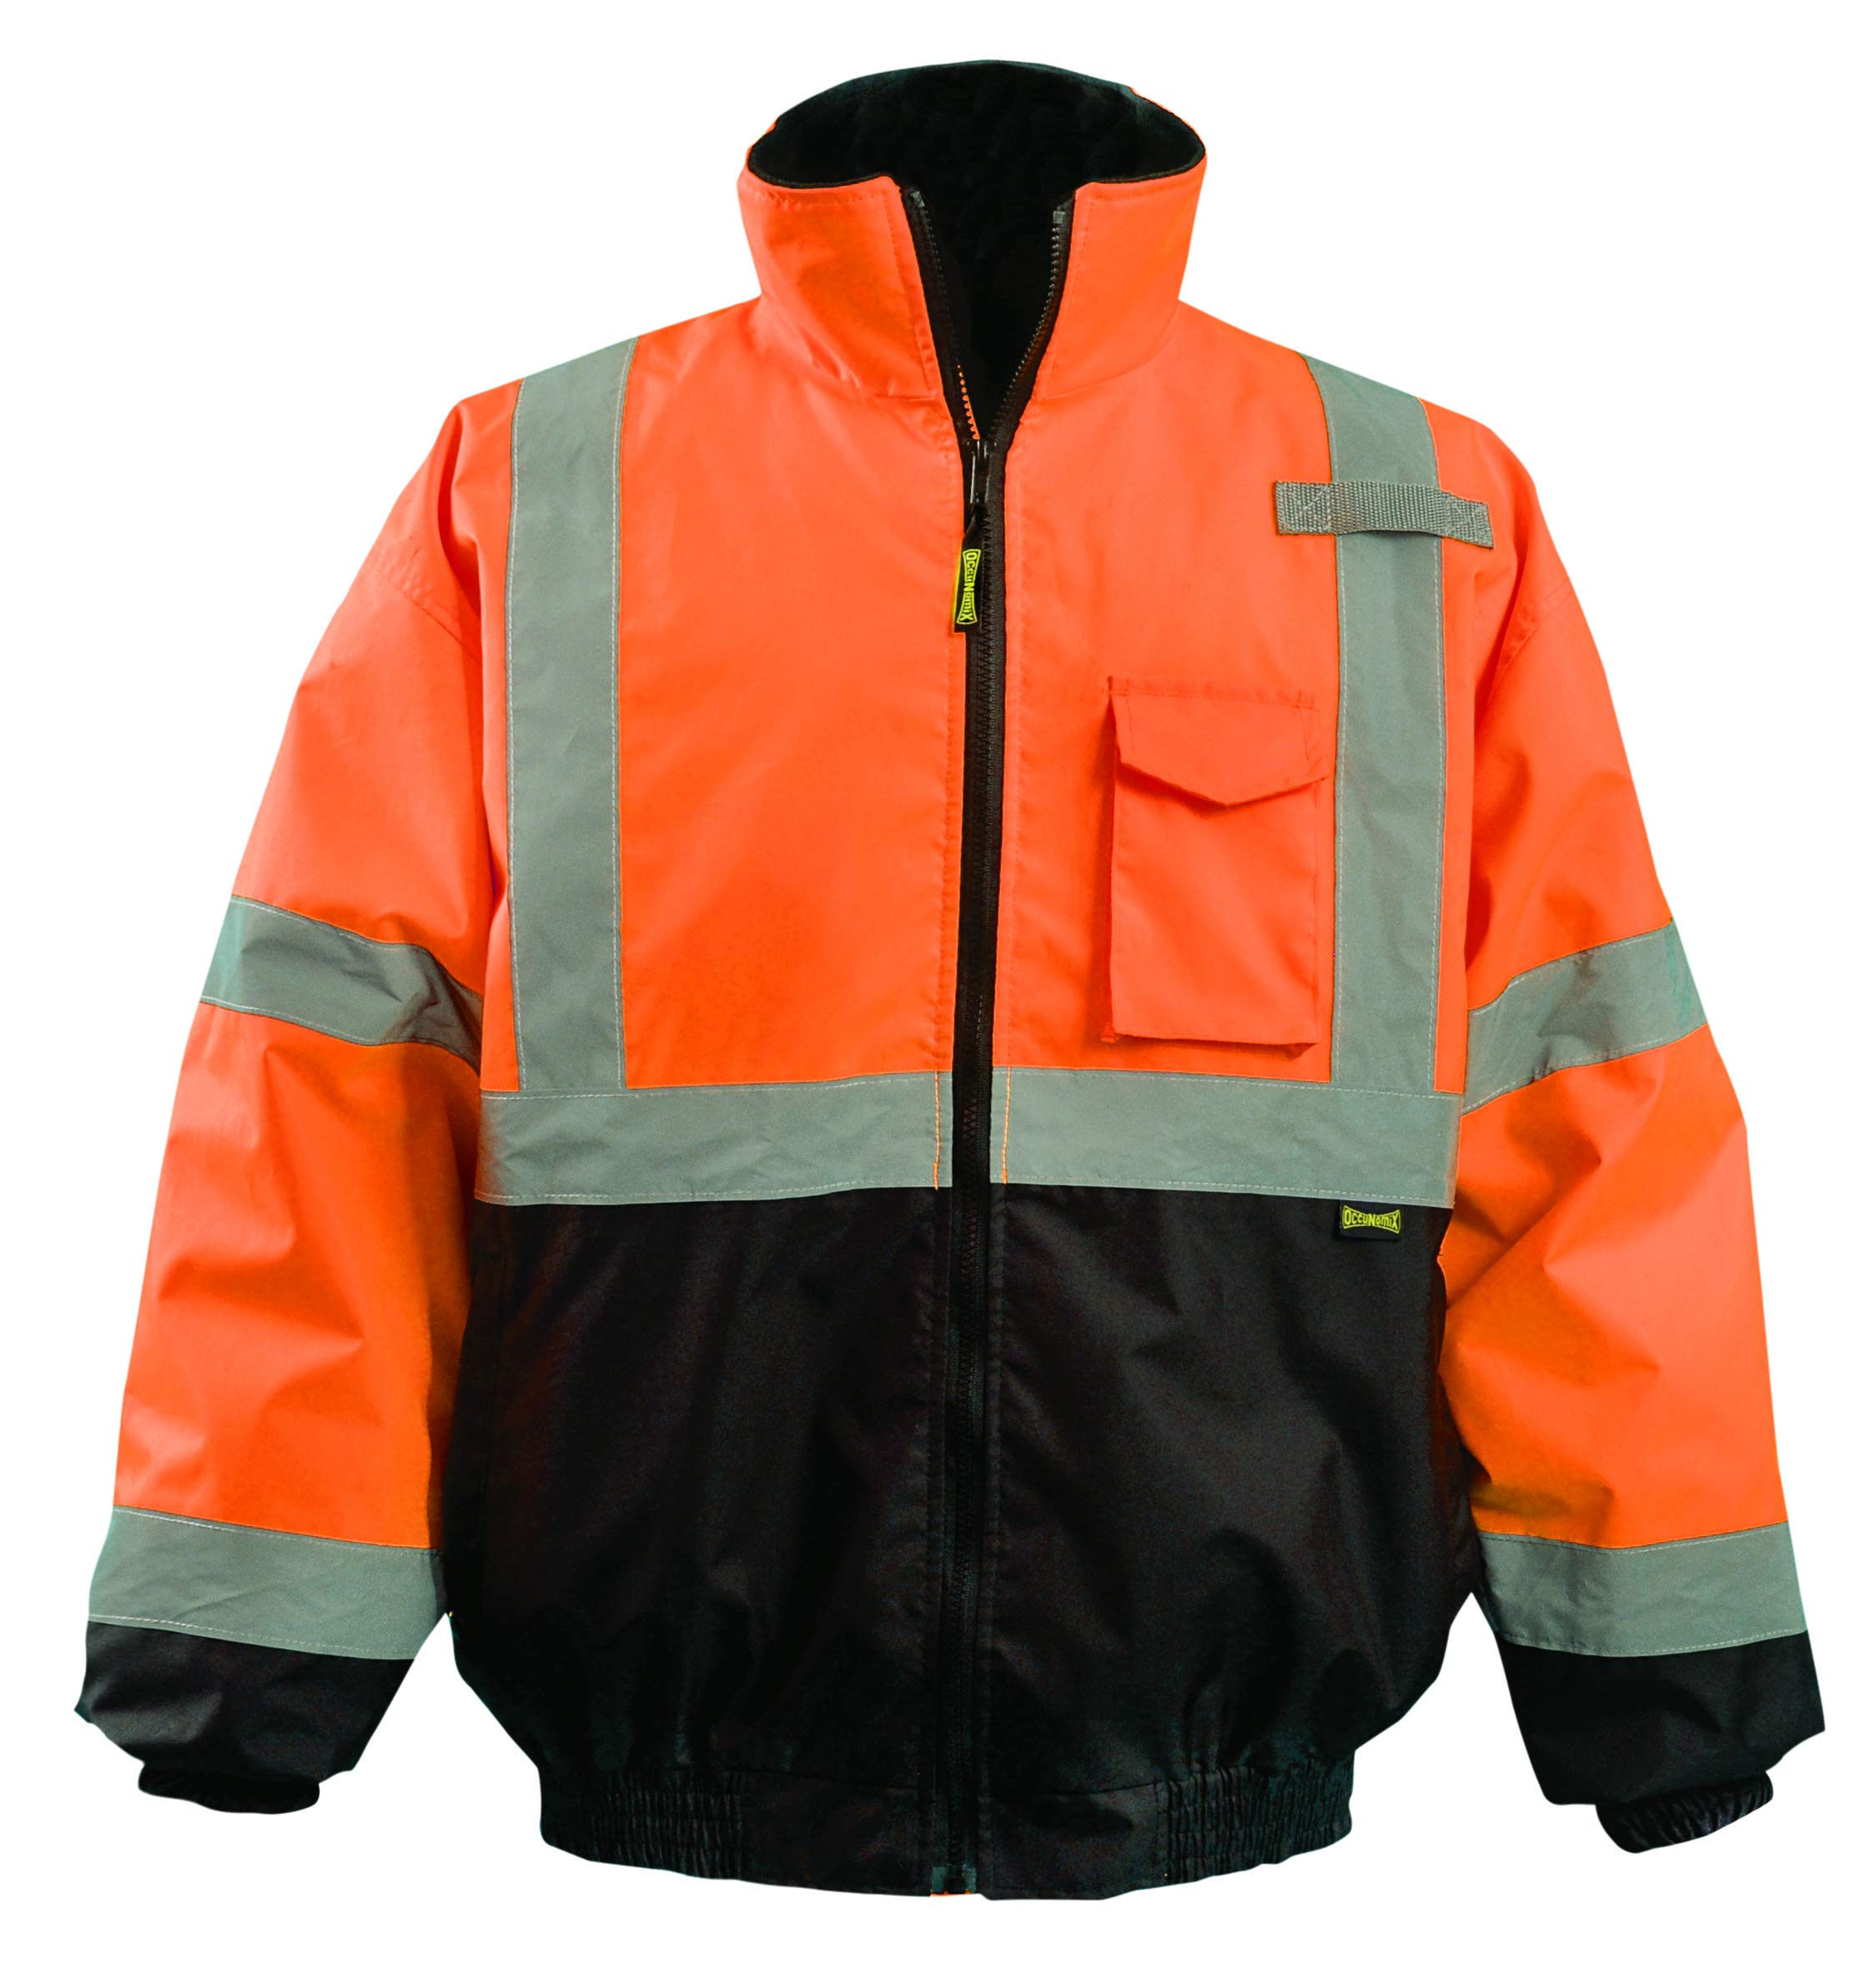 OccuNomix LUX-350-JB-BO2X High Visibility 2-in-1 Quilted Black Bottom Bomber Jacket with Zip-Out Quilted Liner and 7 Pockets, Class 3, 100% ANSI Polyester, 2X-Large, Orange